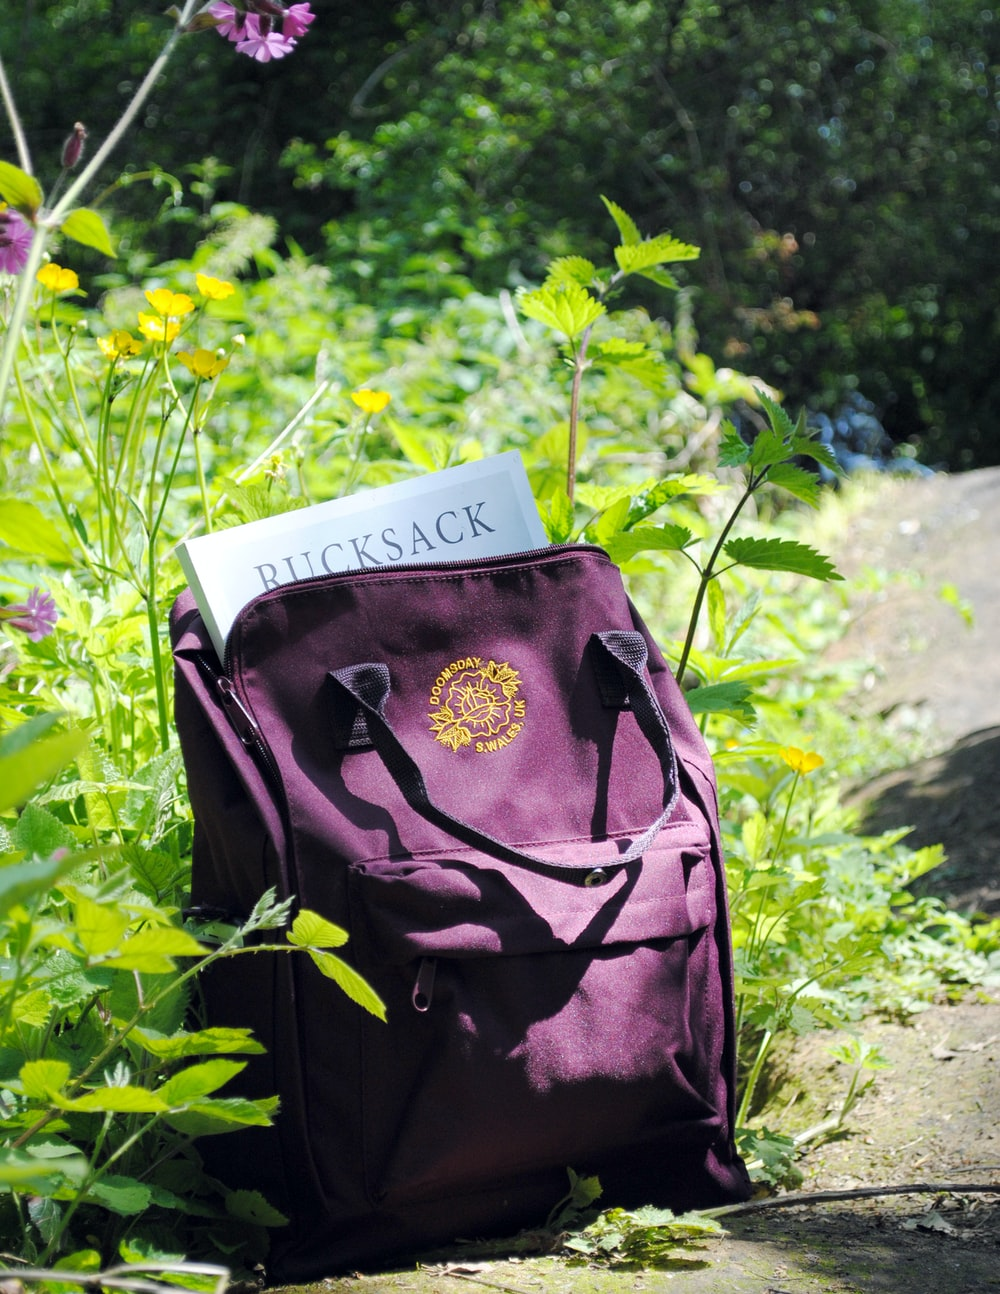 purple leather backpack beside petaled flower